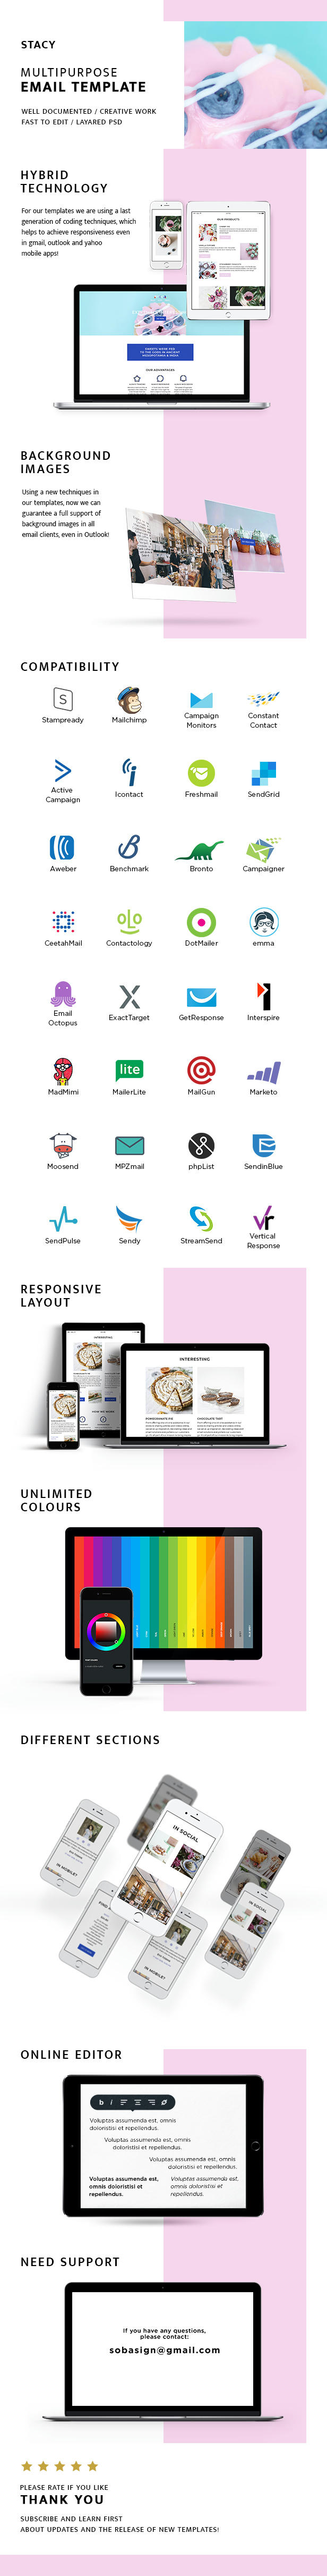 Preview stacy – responsive email + stampready builder (email templates) Stacy – Responsive Email + StampReady Builder (Email Templates) 6h66dc2sjfh982azg